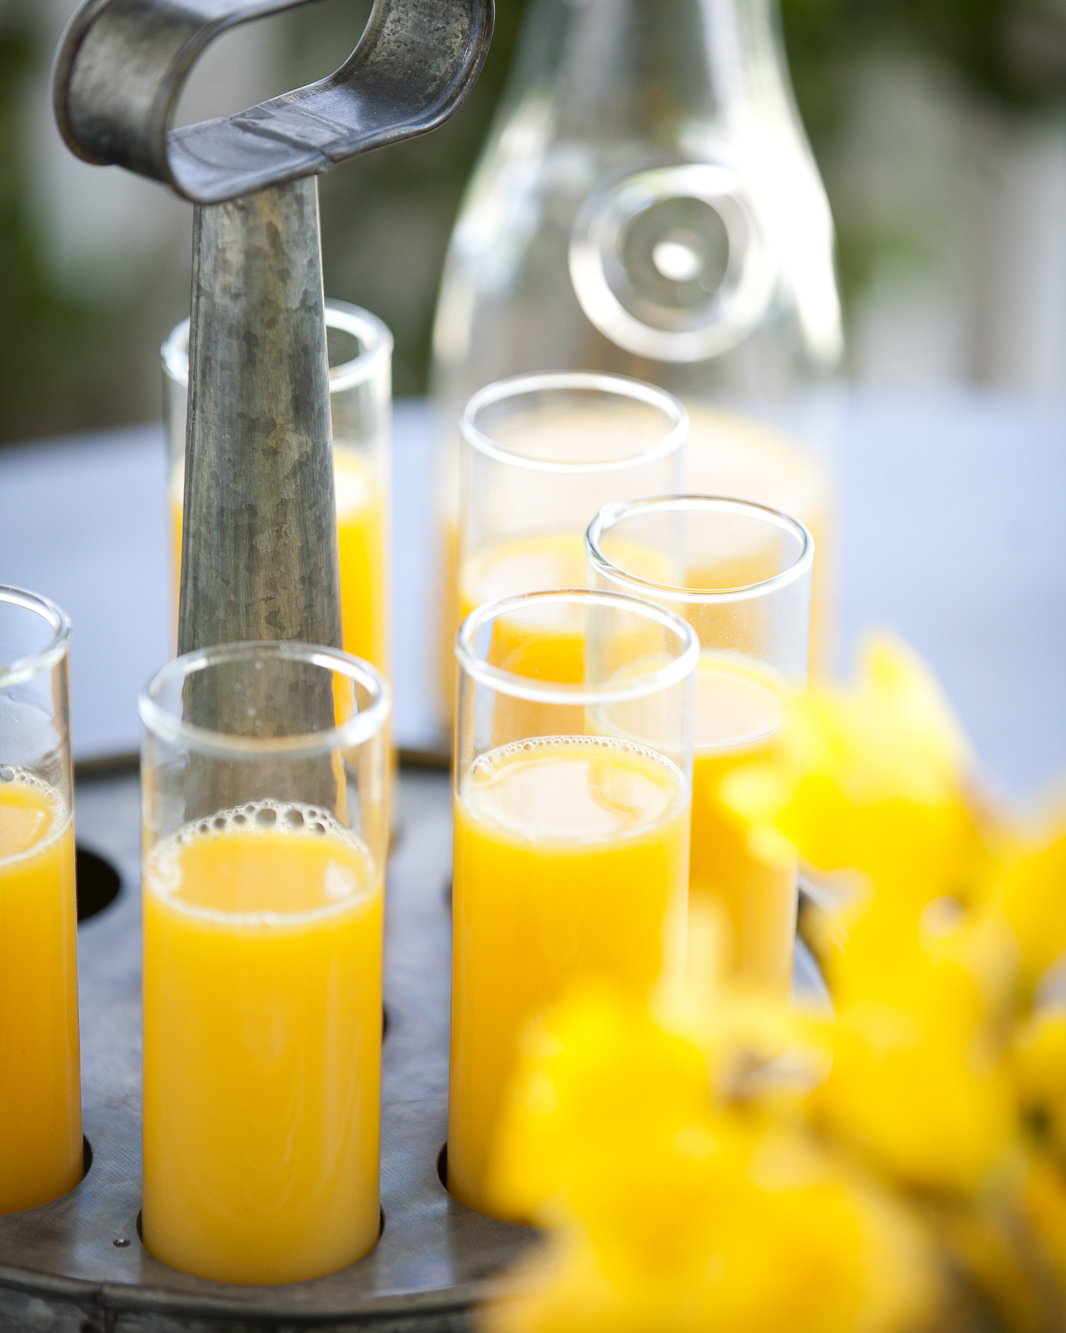 Six glasses of orange juice in a rustic galvanized serving caddy. Yellow tulips are in the foreground and a carafe of oj in the back.